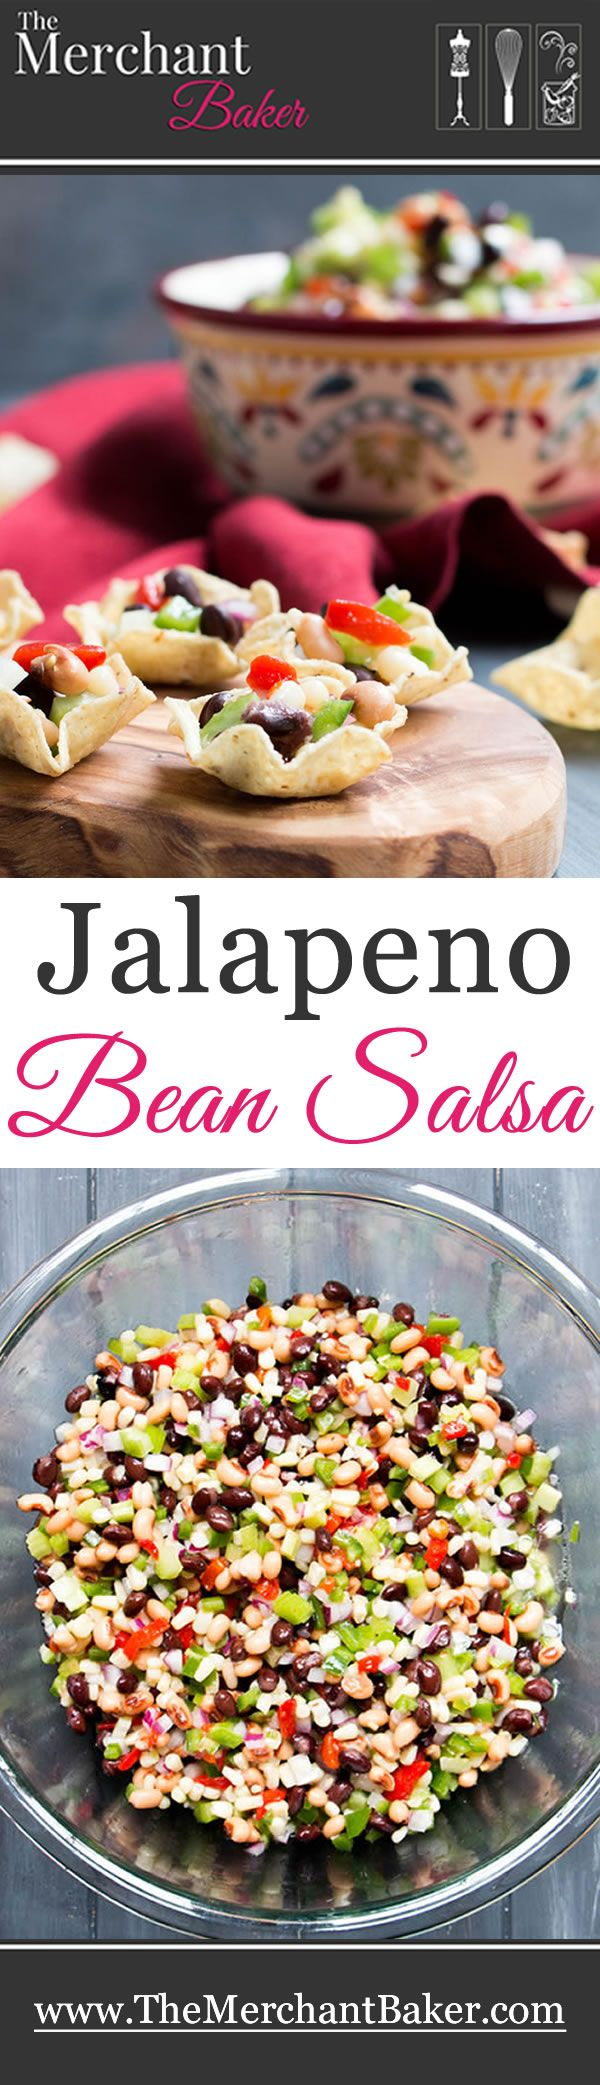 Jalapeno Bean Salsa. Lightly sweet with a bit of heat, this salsa gets recipe requests everywhere it goes! It's a great make ahead recipe.